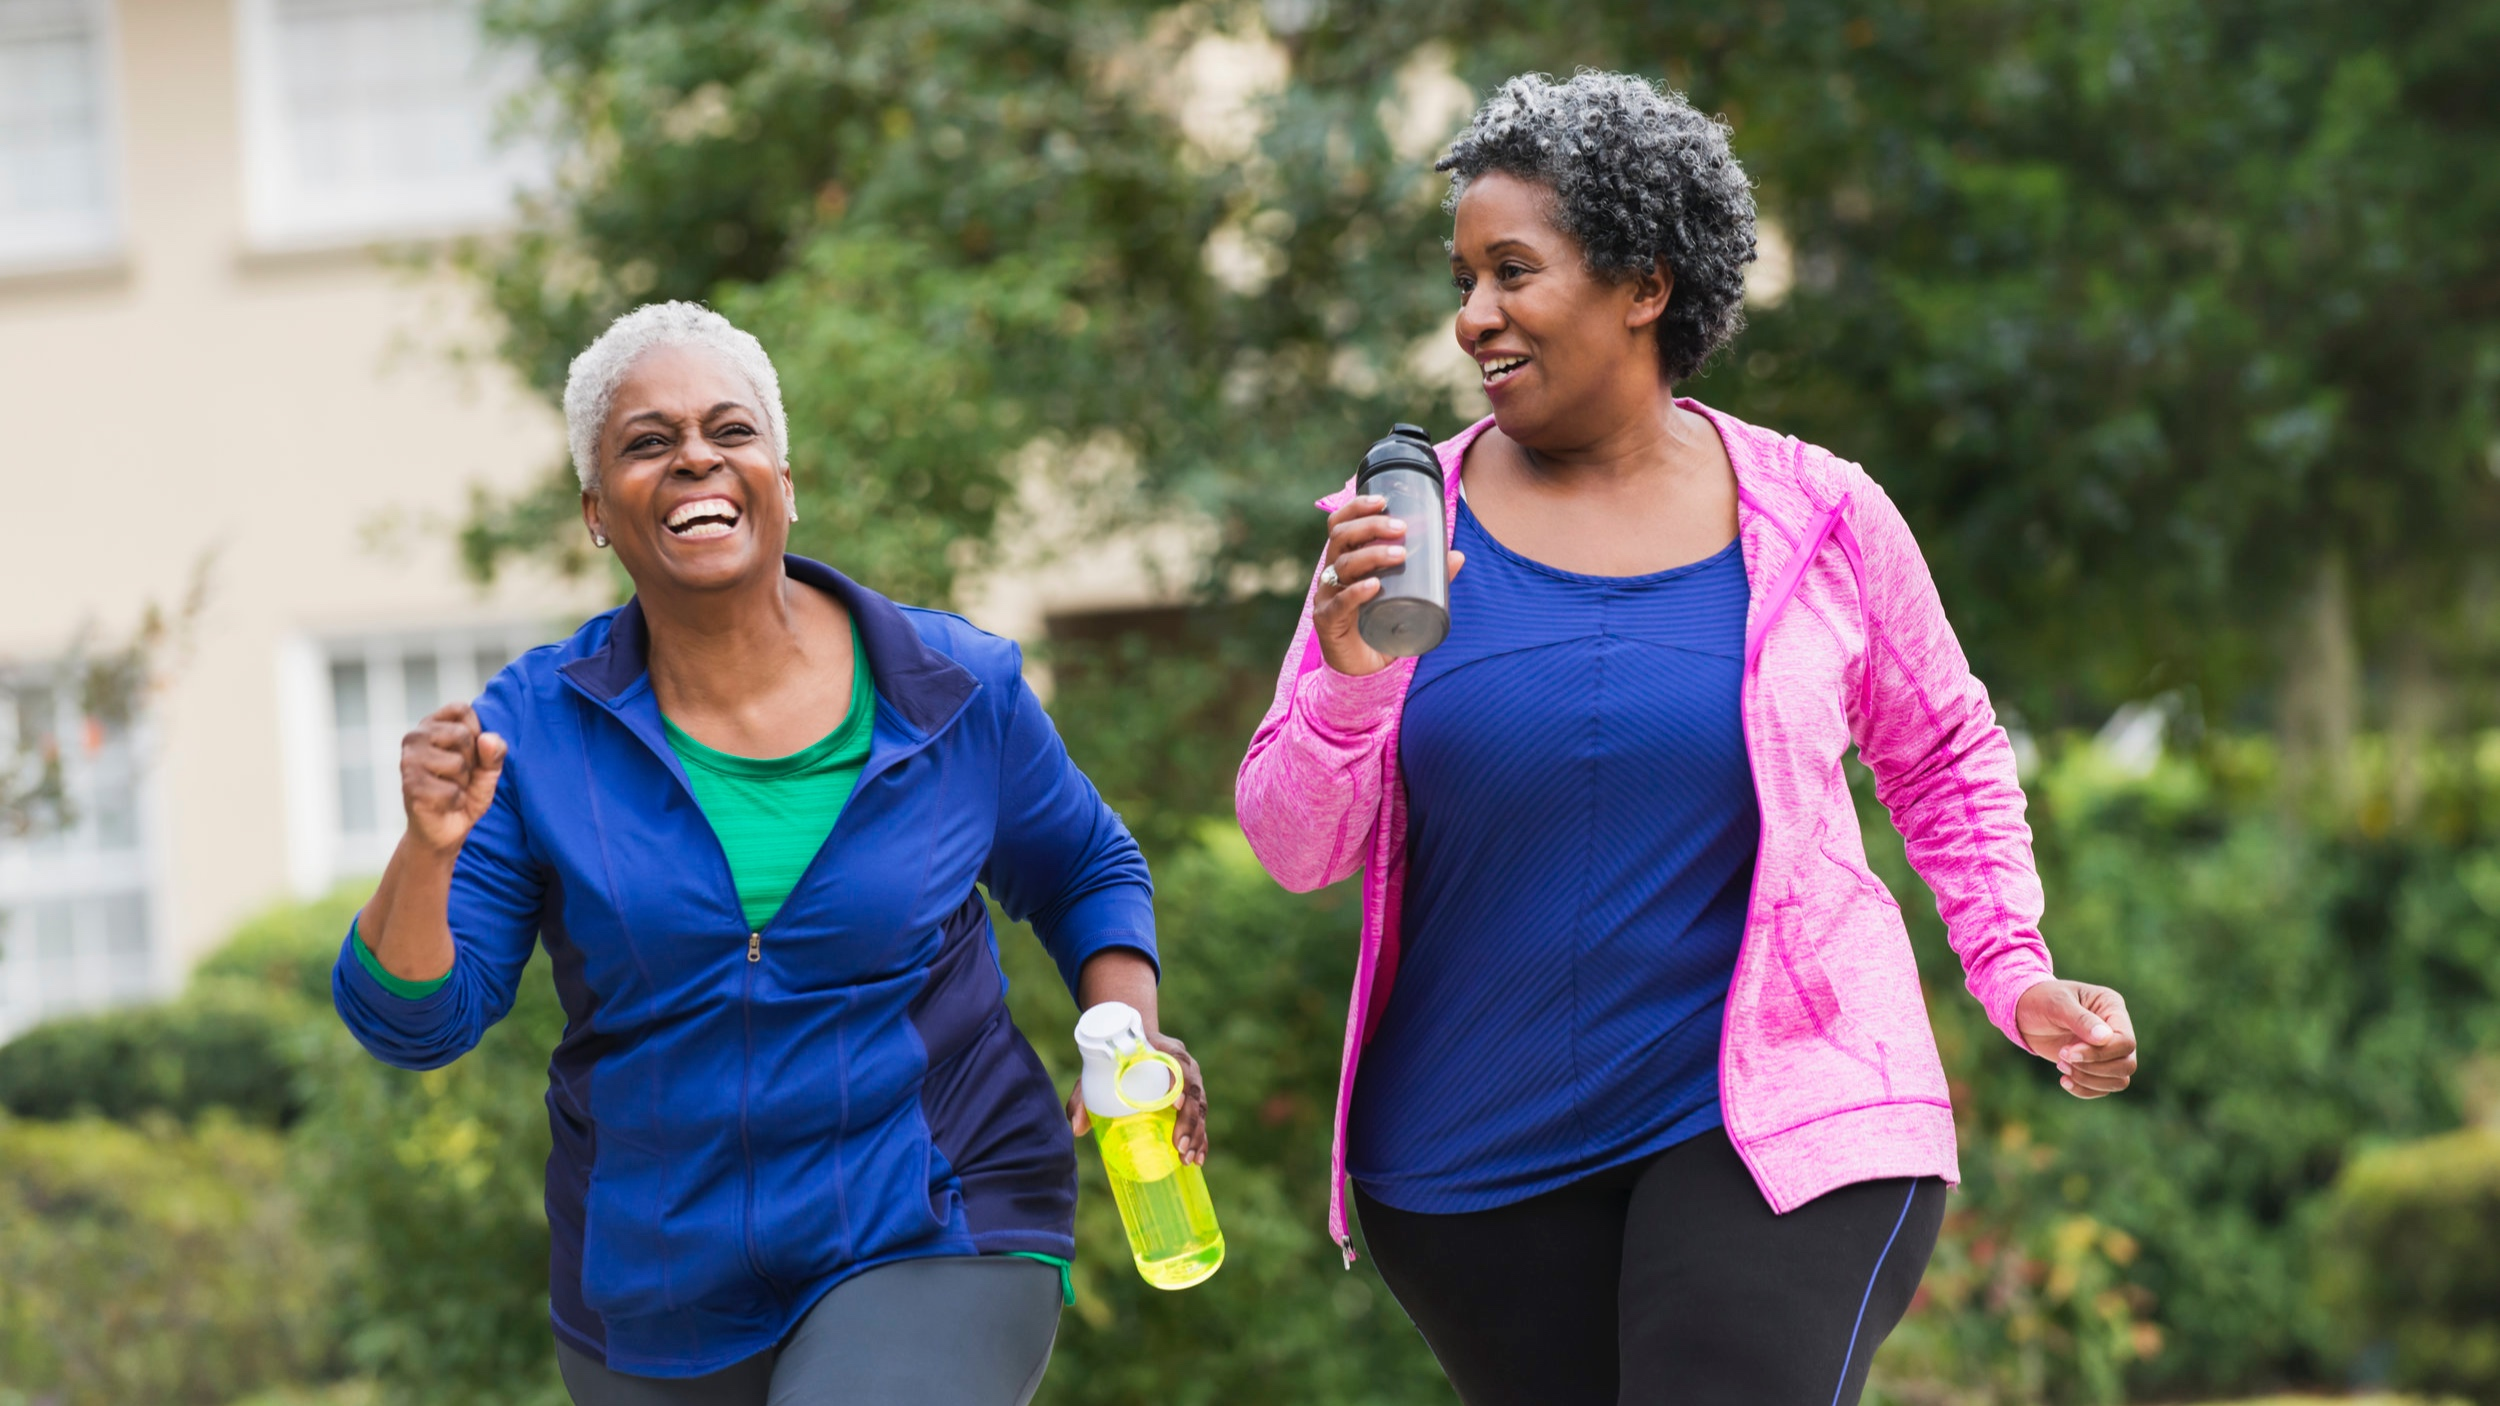 Senior Black Women ExercisingiStock-472823202.jpg